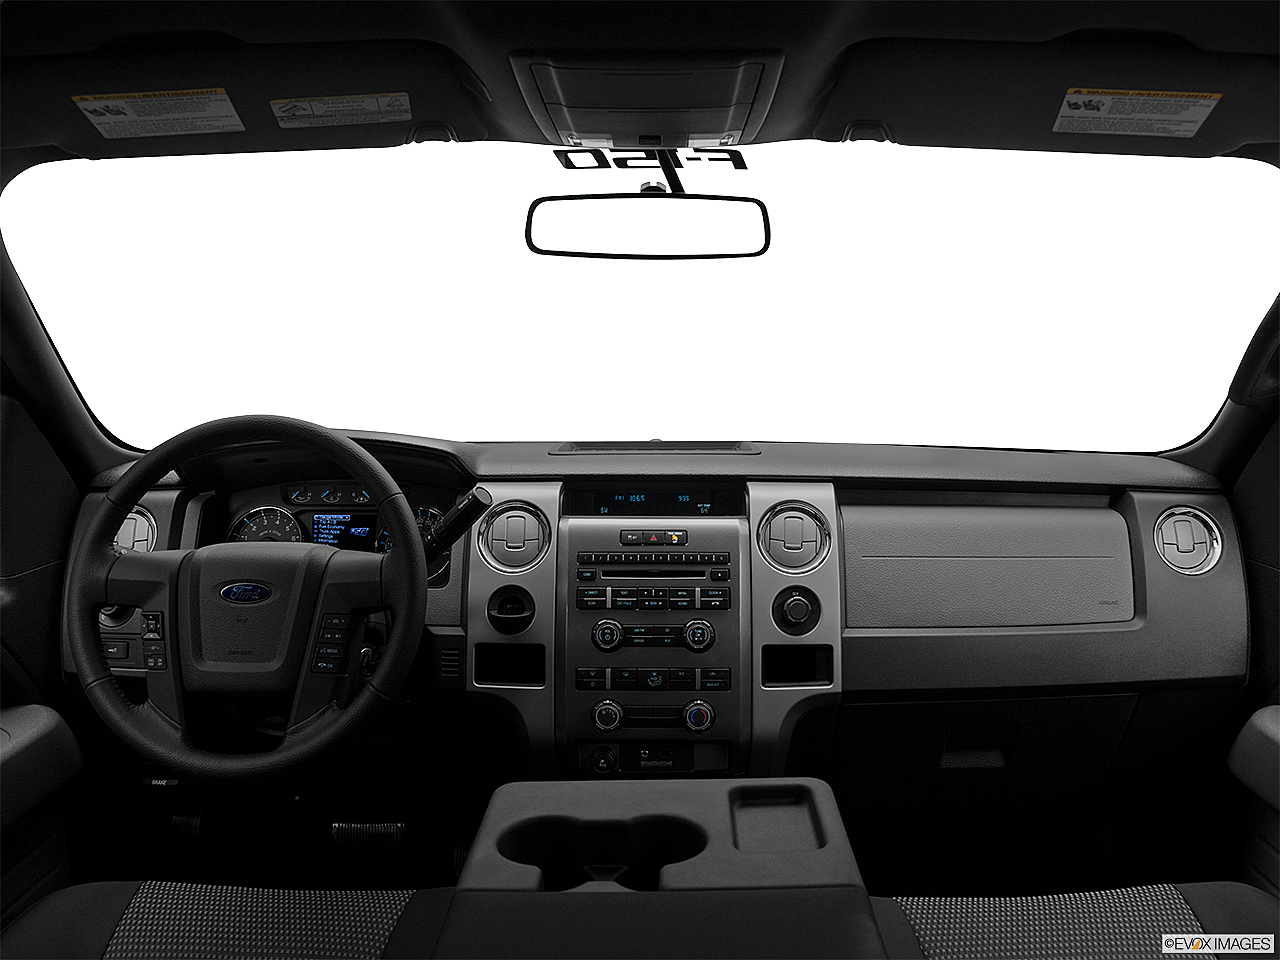 2011 Ford F-150 XLT, centered wide dash shot